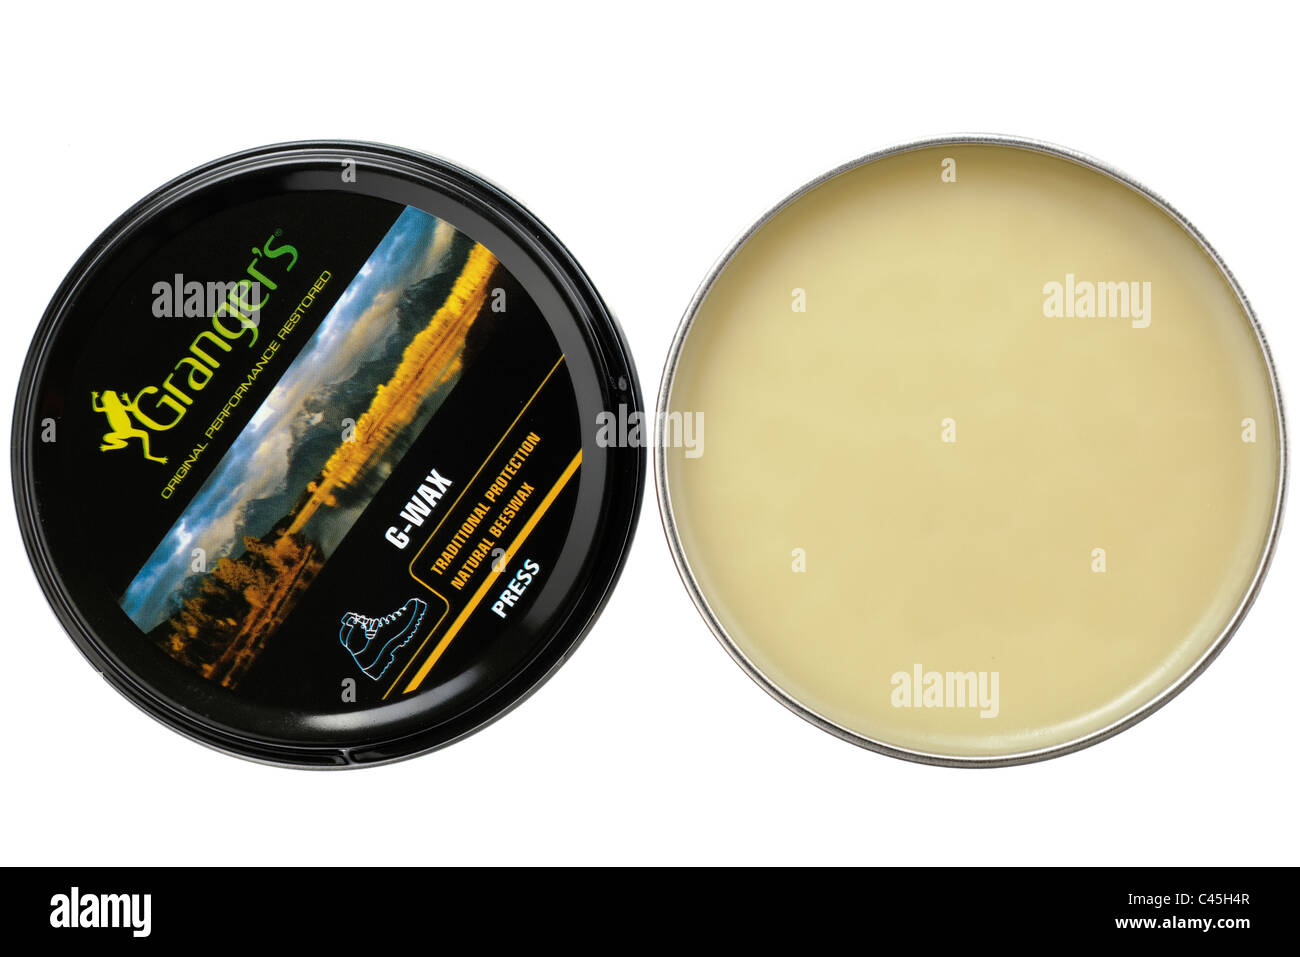 Opened tin of Grangers original G wax beeswax for leather boots - Stock Image